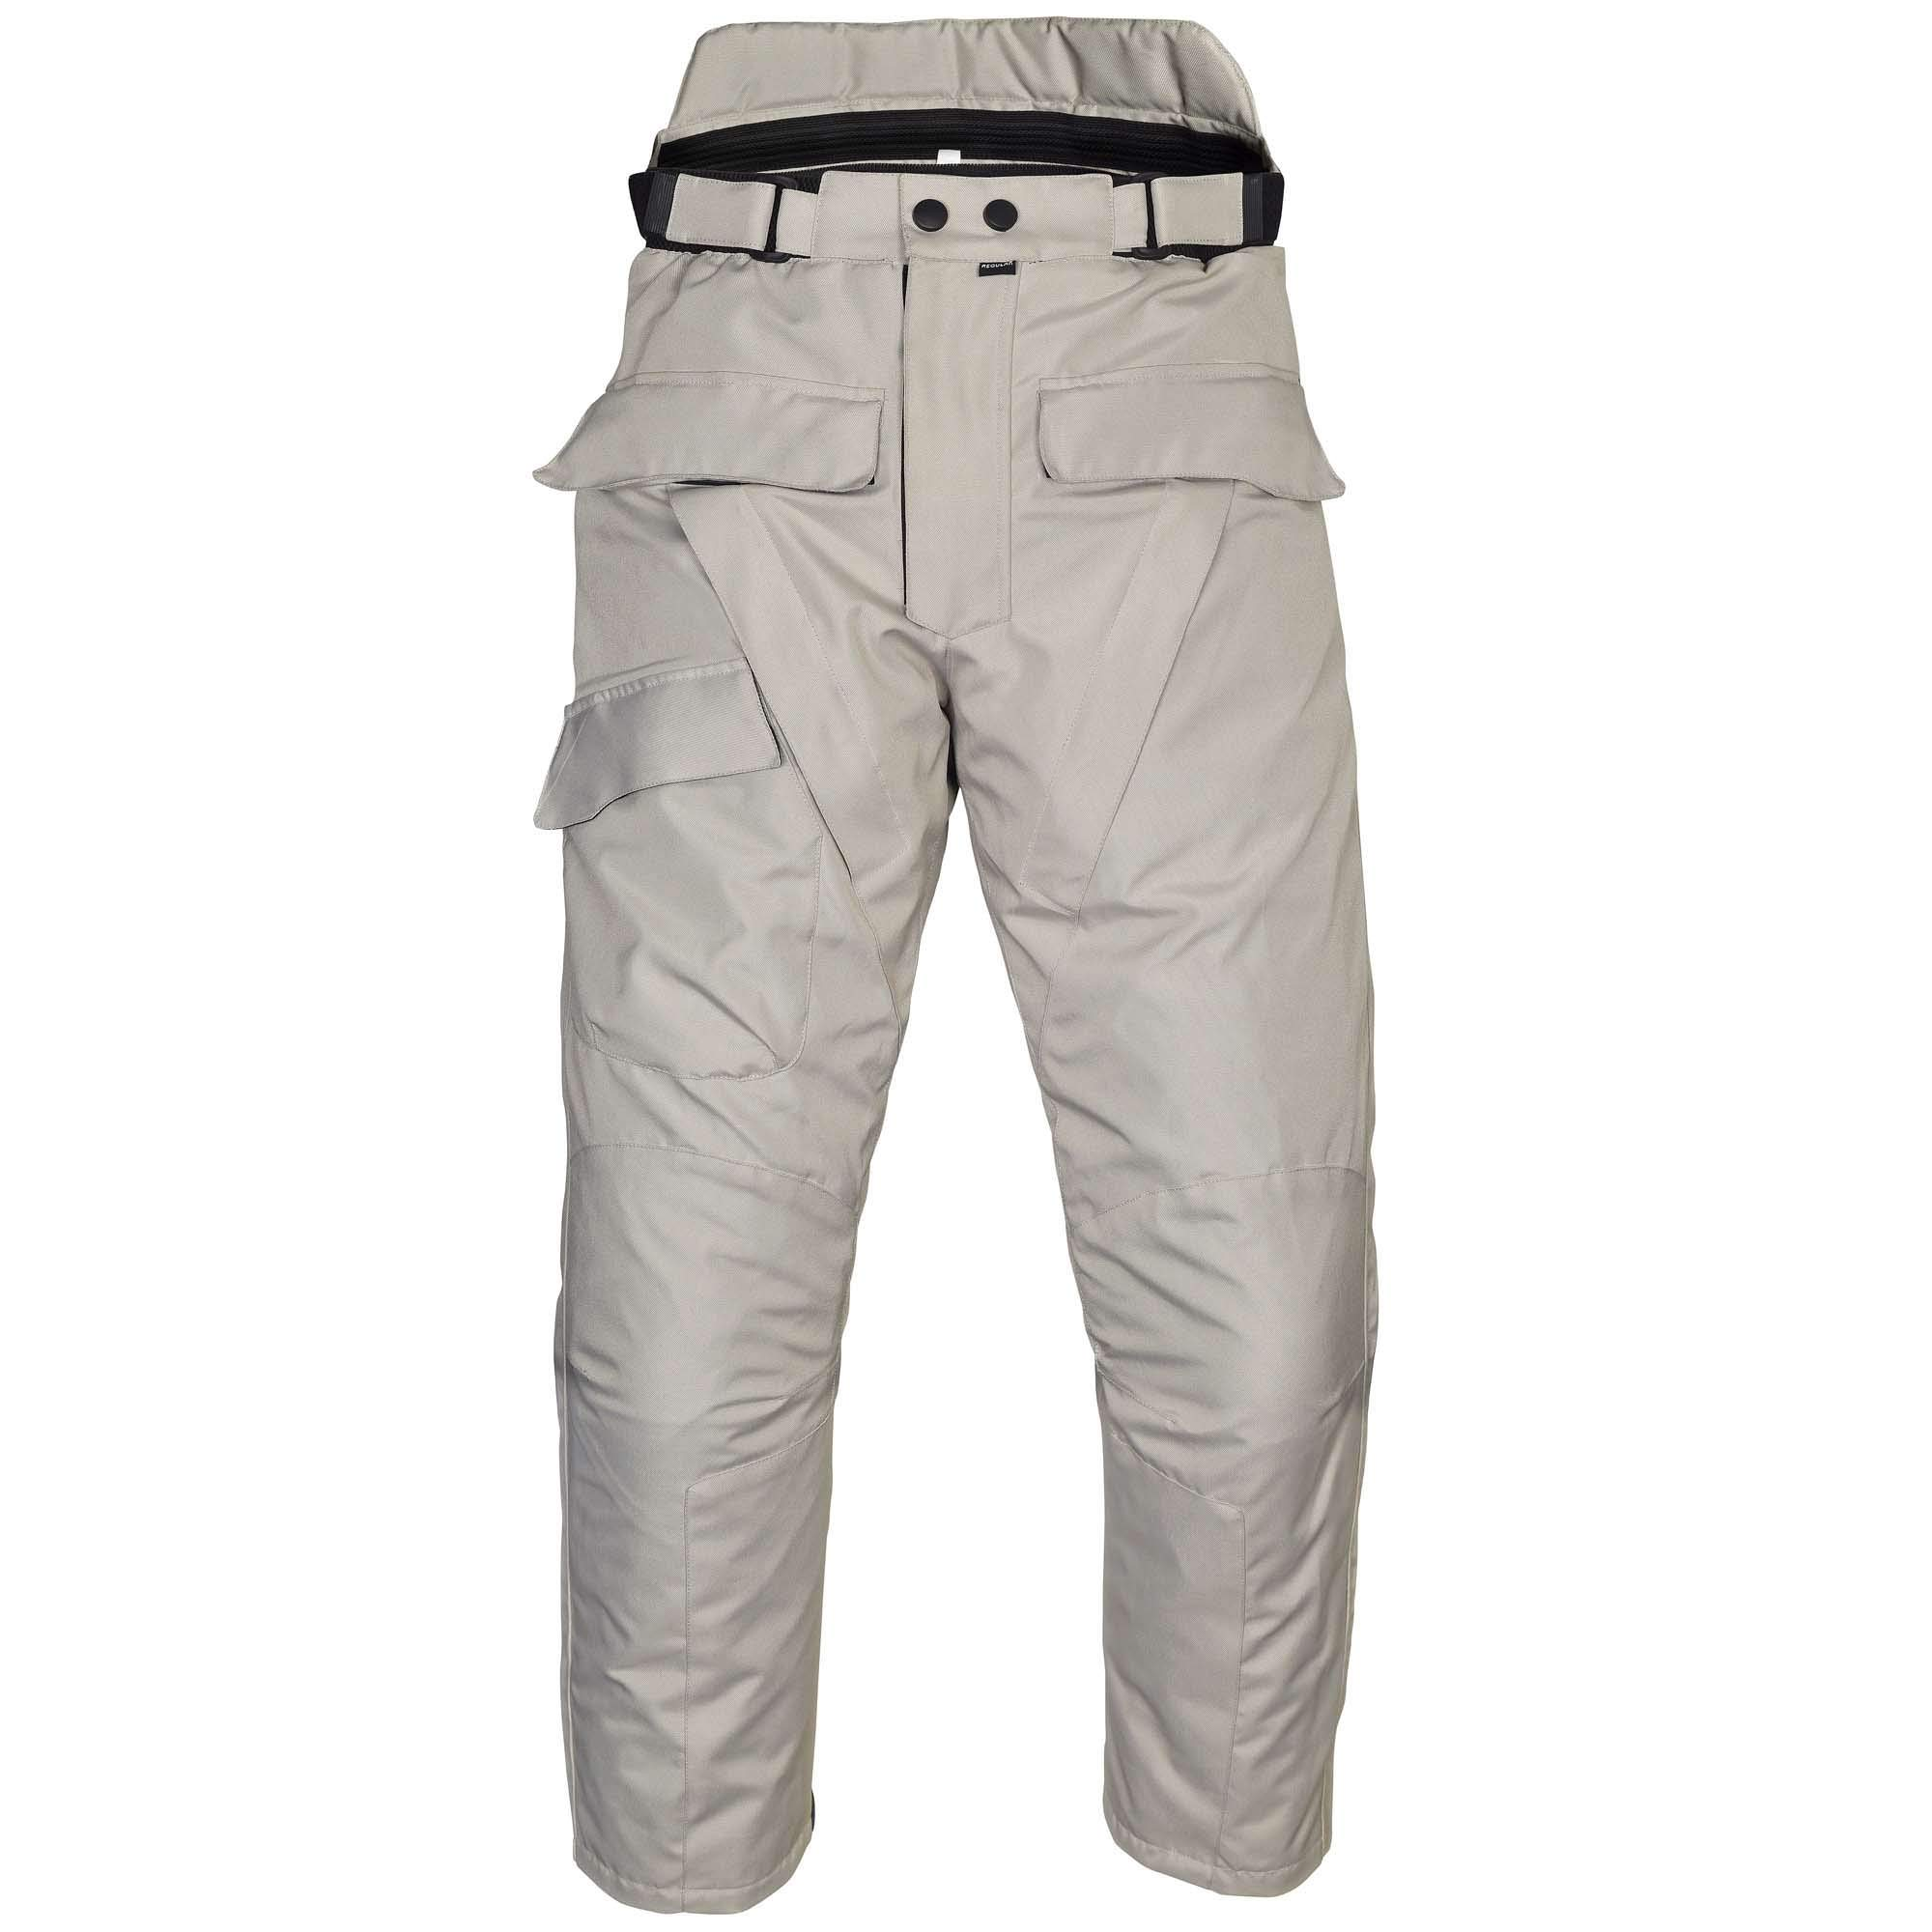 Men's Motorcycle Waterproof Over-Pants Full Side Zip with Removable CE Armor Gray by WICKED STOCK